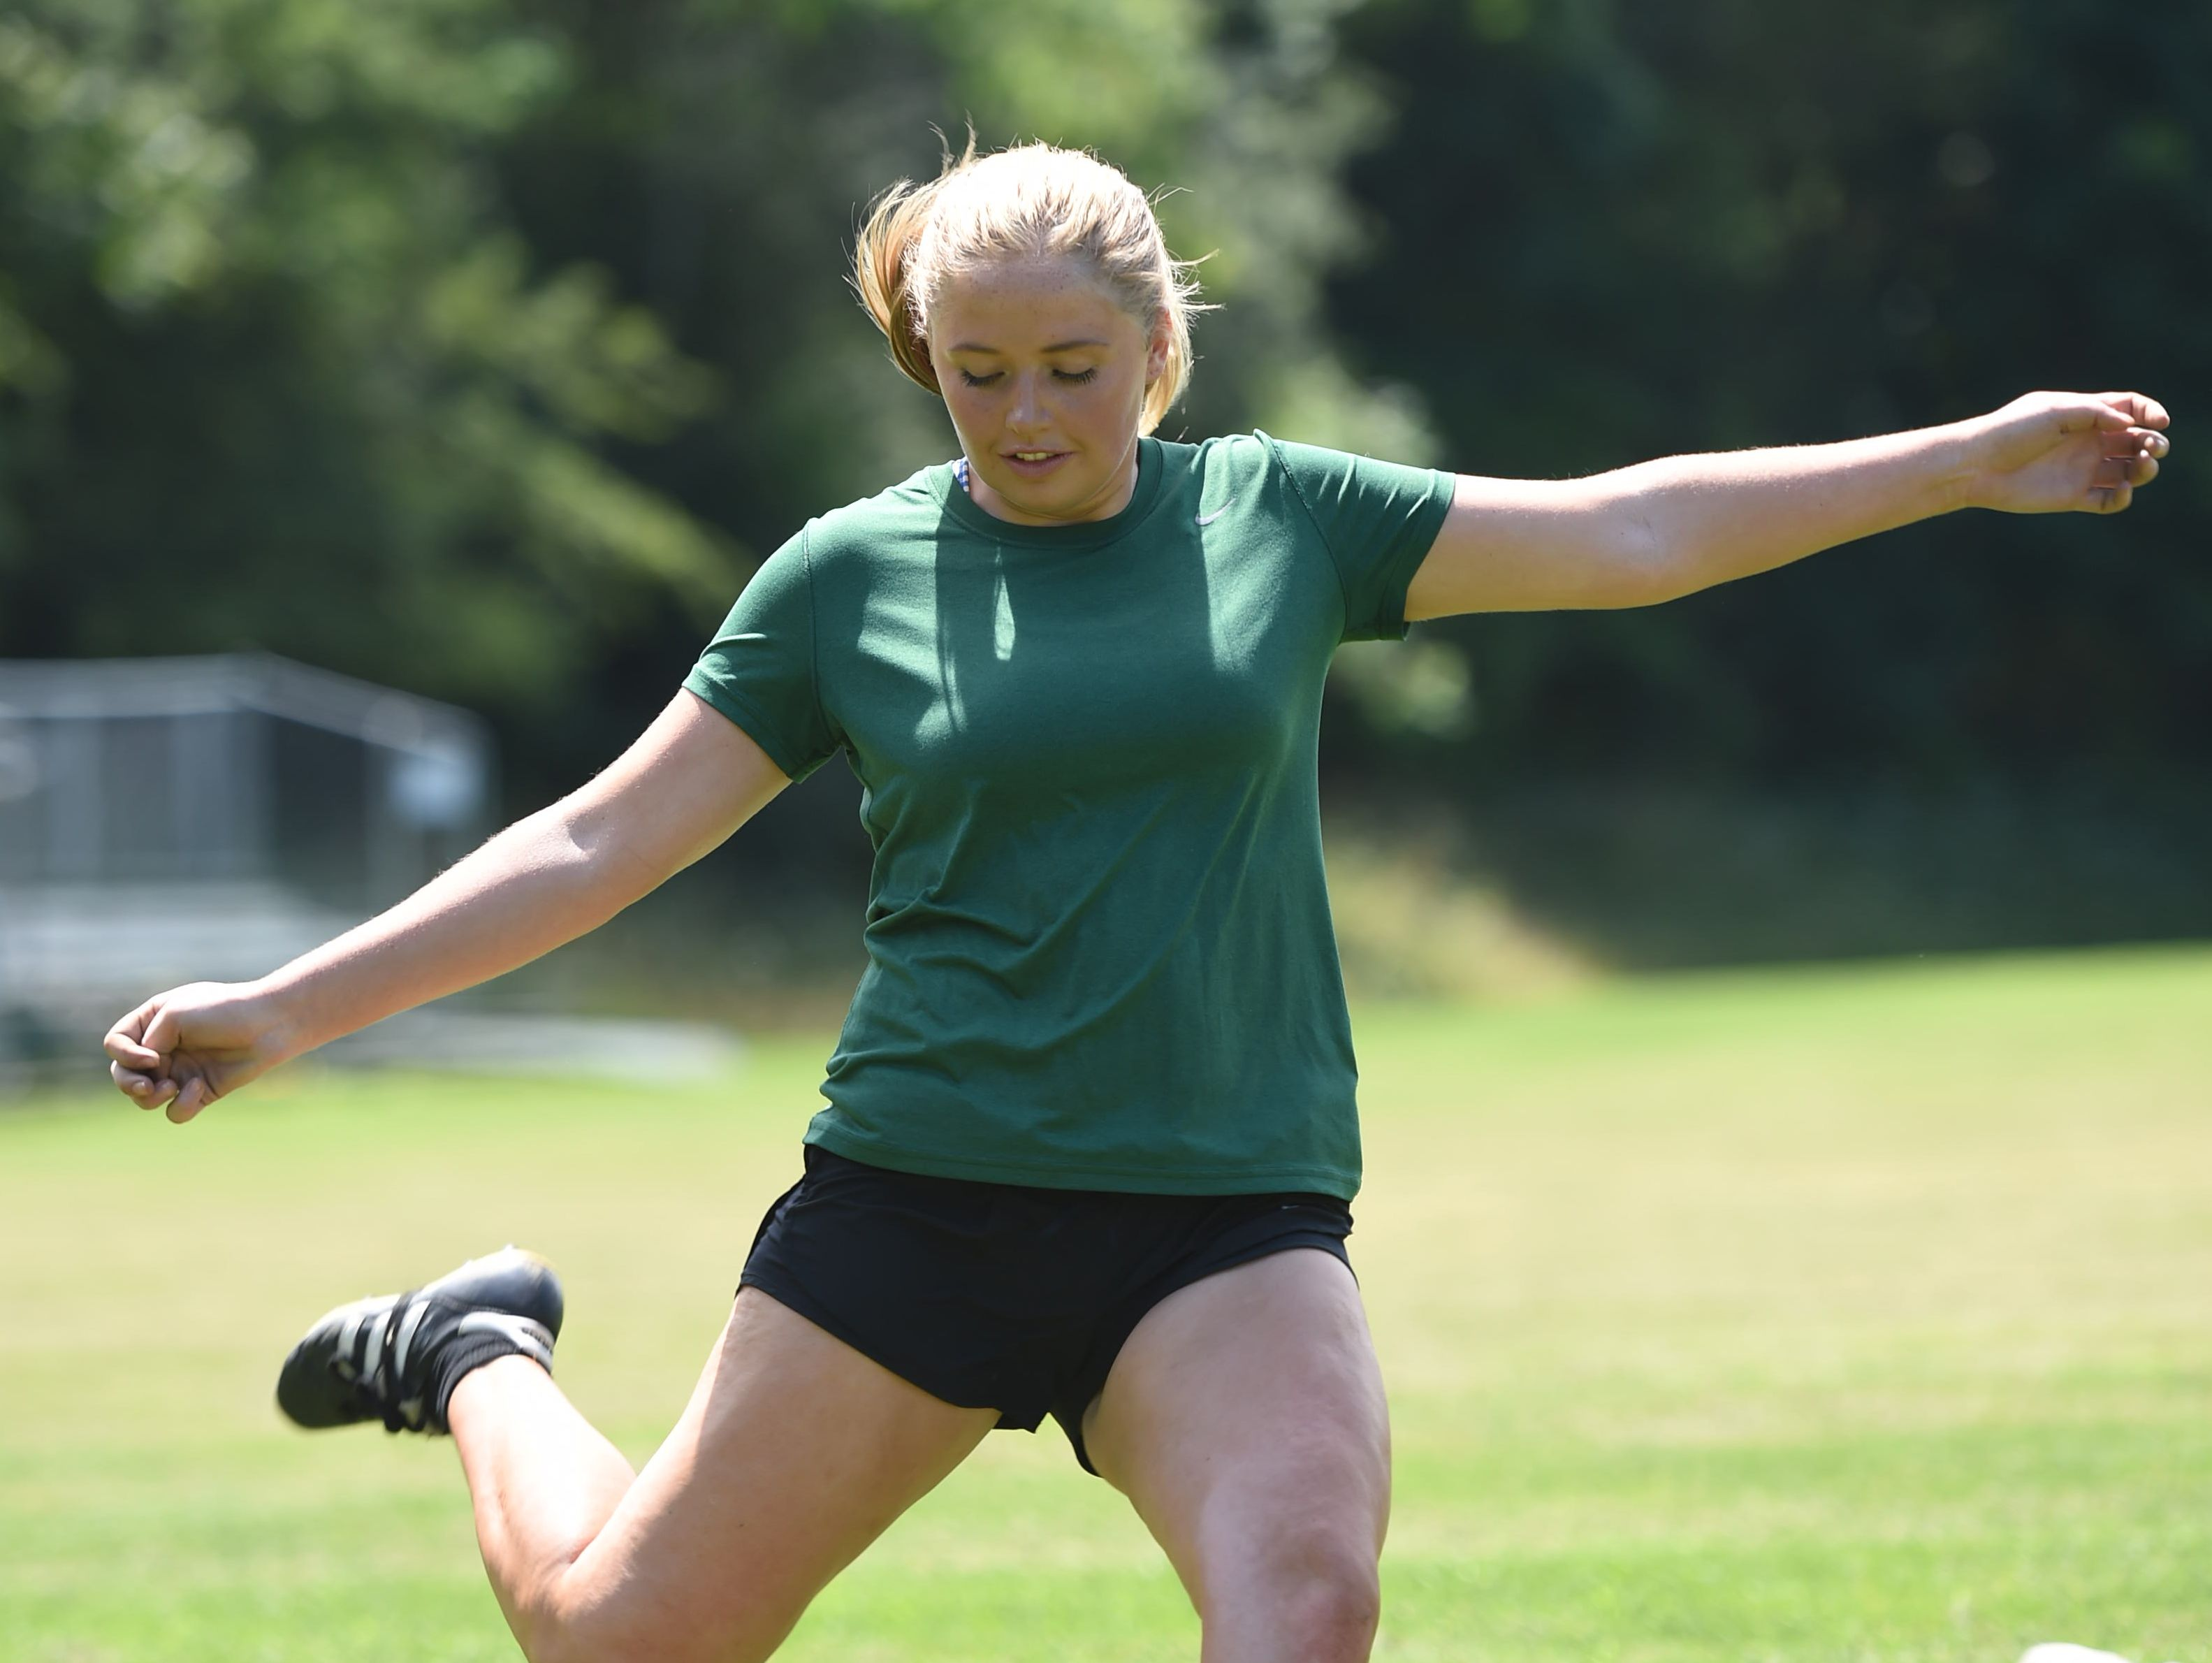 As part of her workout routine, Eileen Fiore practices shooting the ball at Spackenkill High School on Monday. Fiore tore her ACL during a playoff game against Dover High School on October 29, 2015.